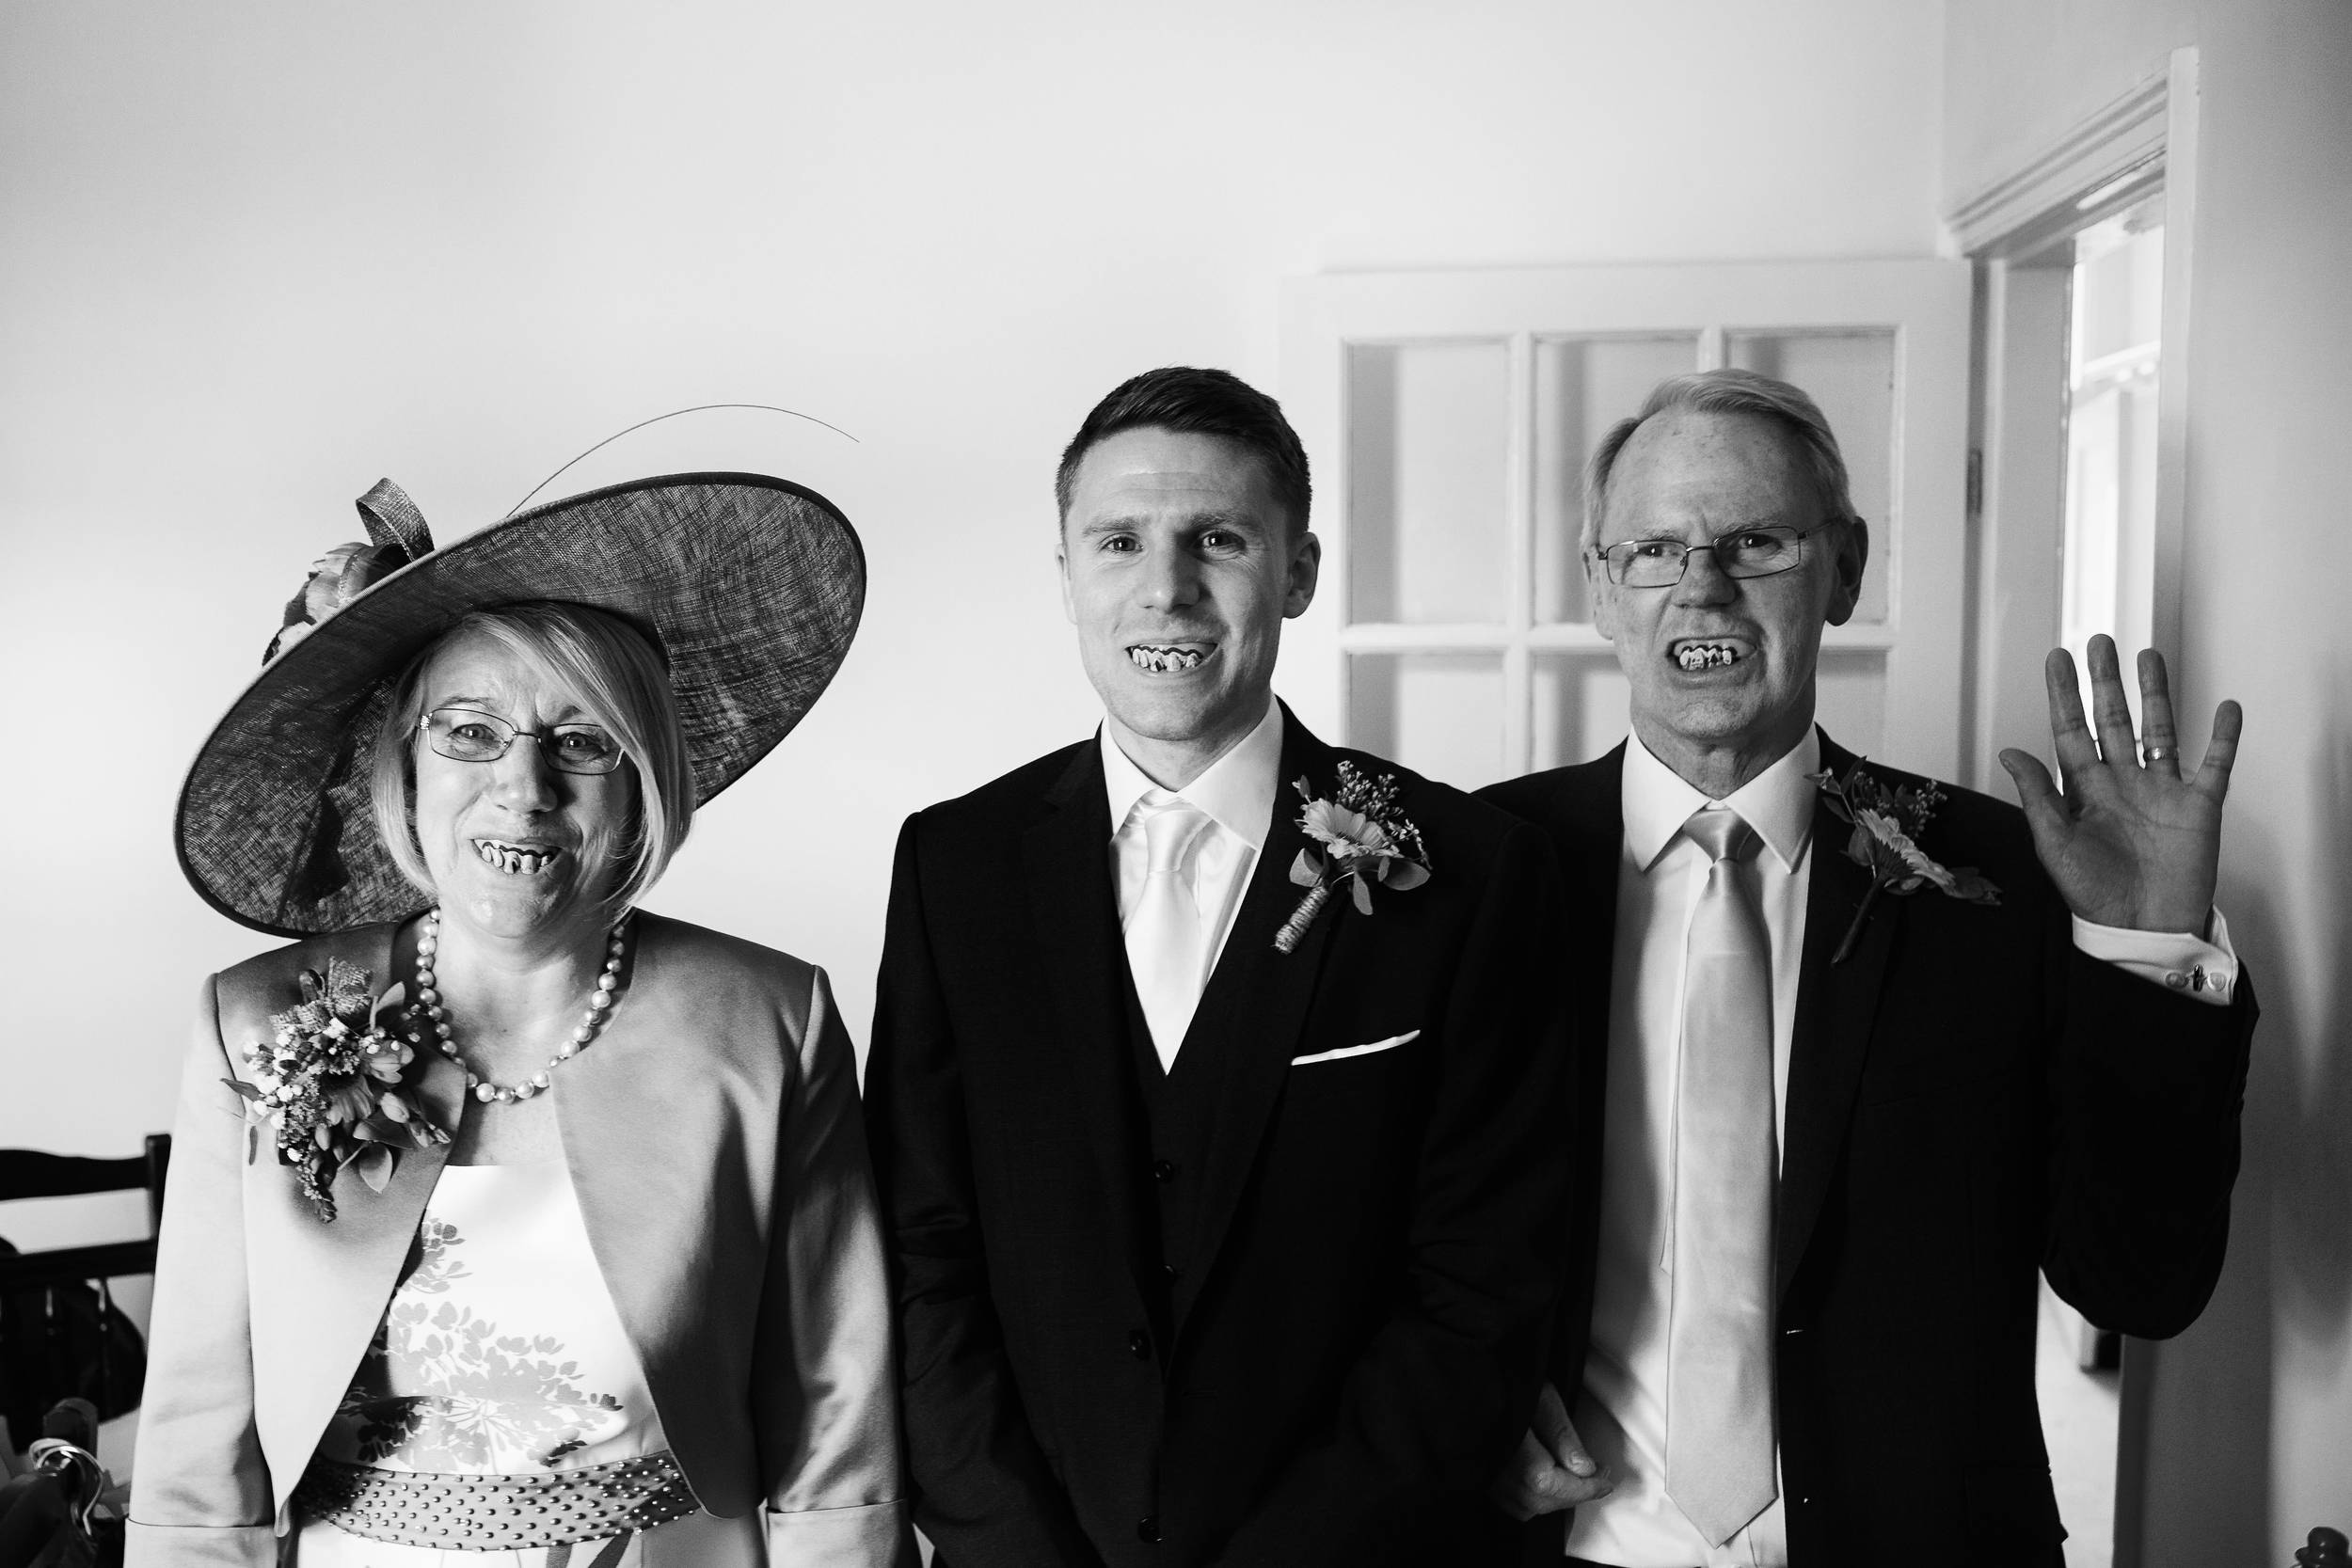 An amusing black and white photograph of the groom and parents of the groom wearing false teeth at home in Sunderland